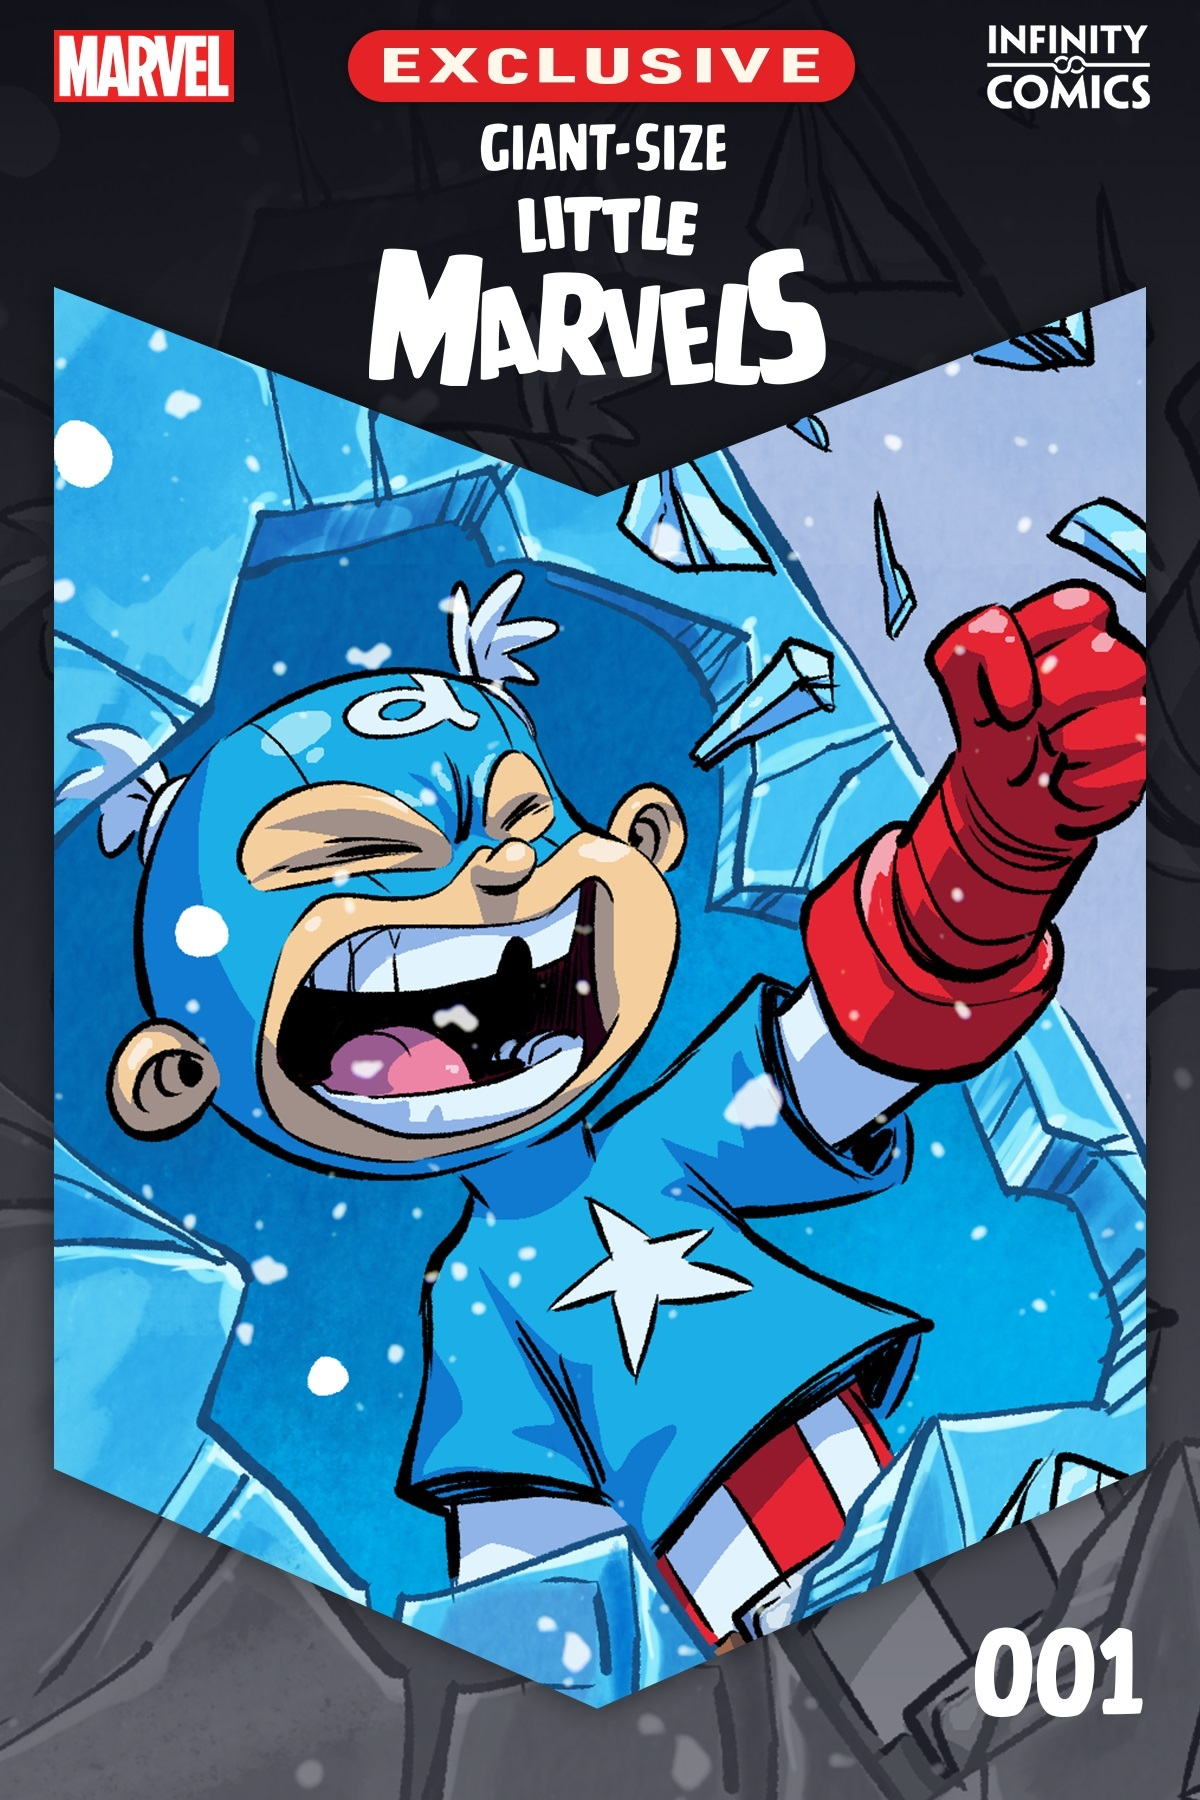 Giant-Size Little Marvels Infinity Comic (2021) #1